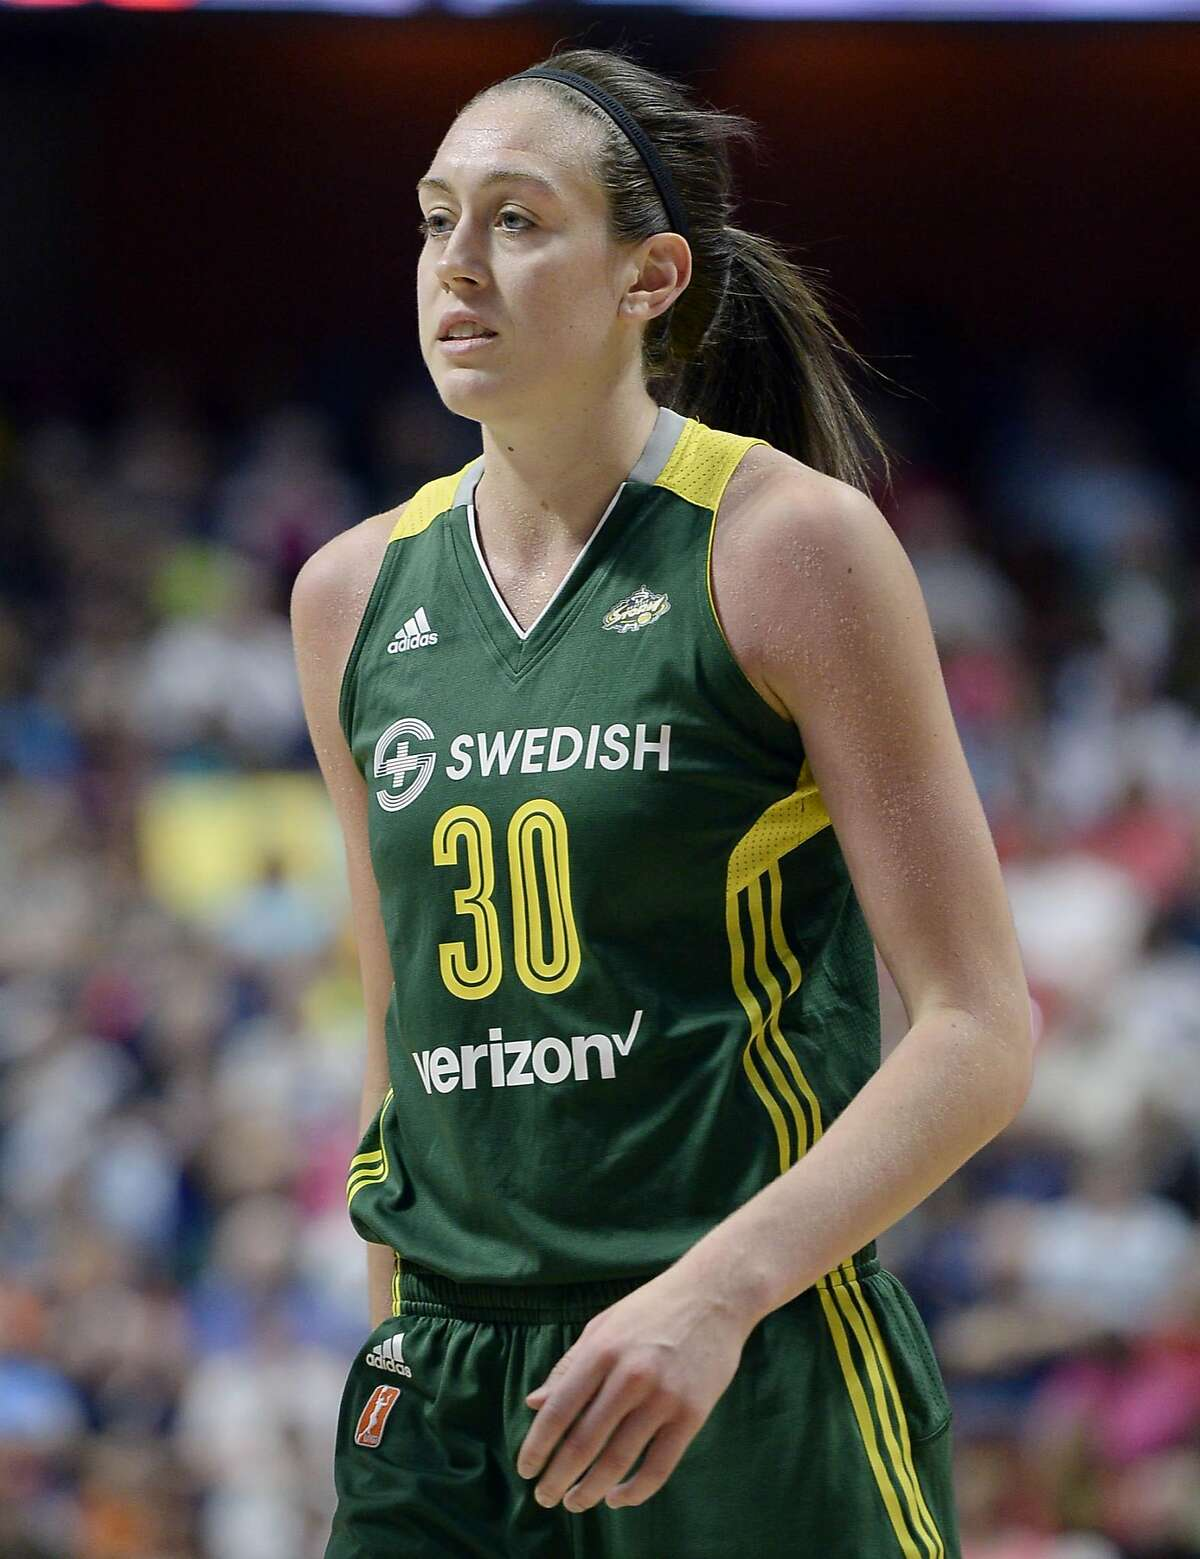 Seattle Storm�s Breanna Stewart during a WNBA basketball game against the Connecticut Sun, Friday, June 10, 2016, in Uncasville, Conn. (AP Photo/Jessica Hill)